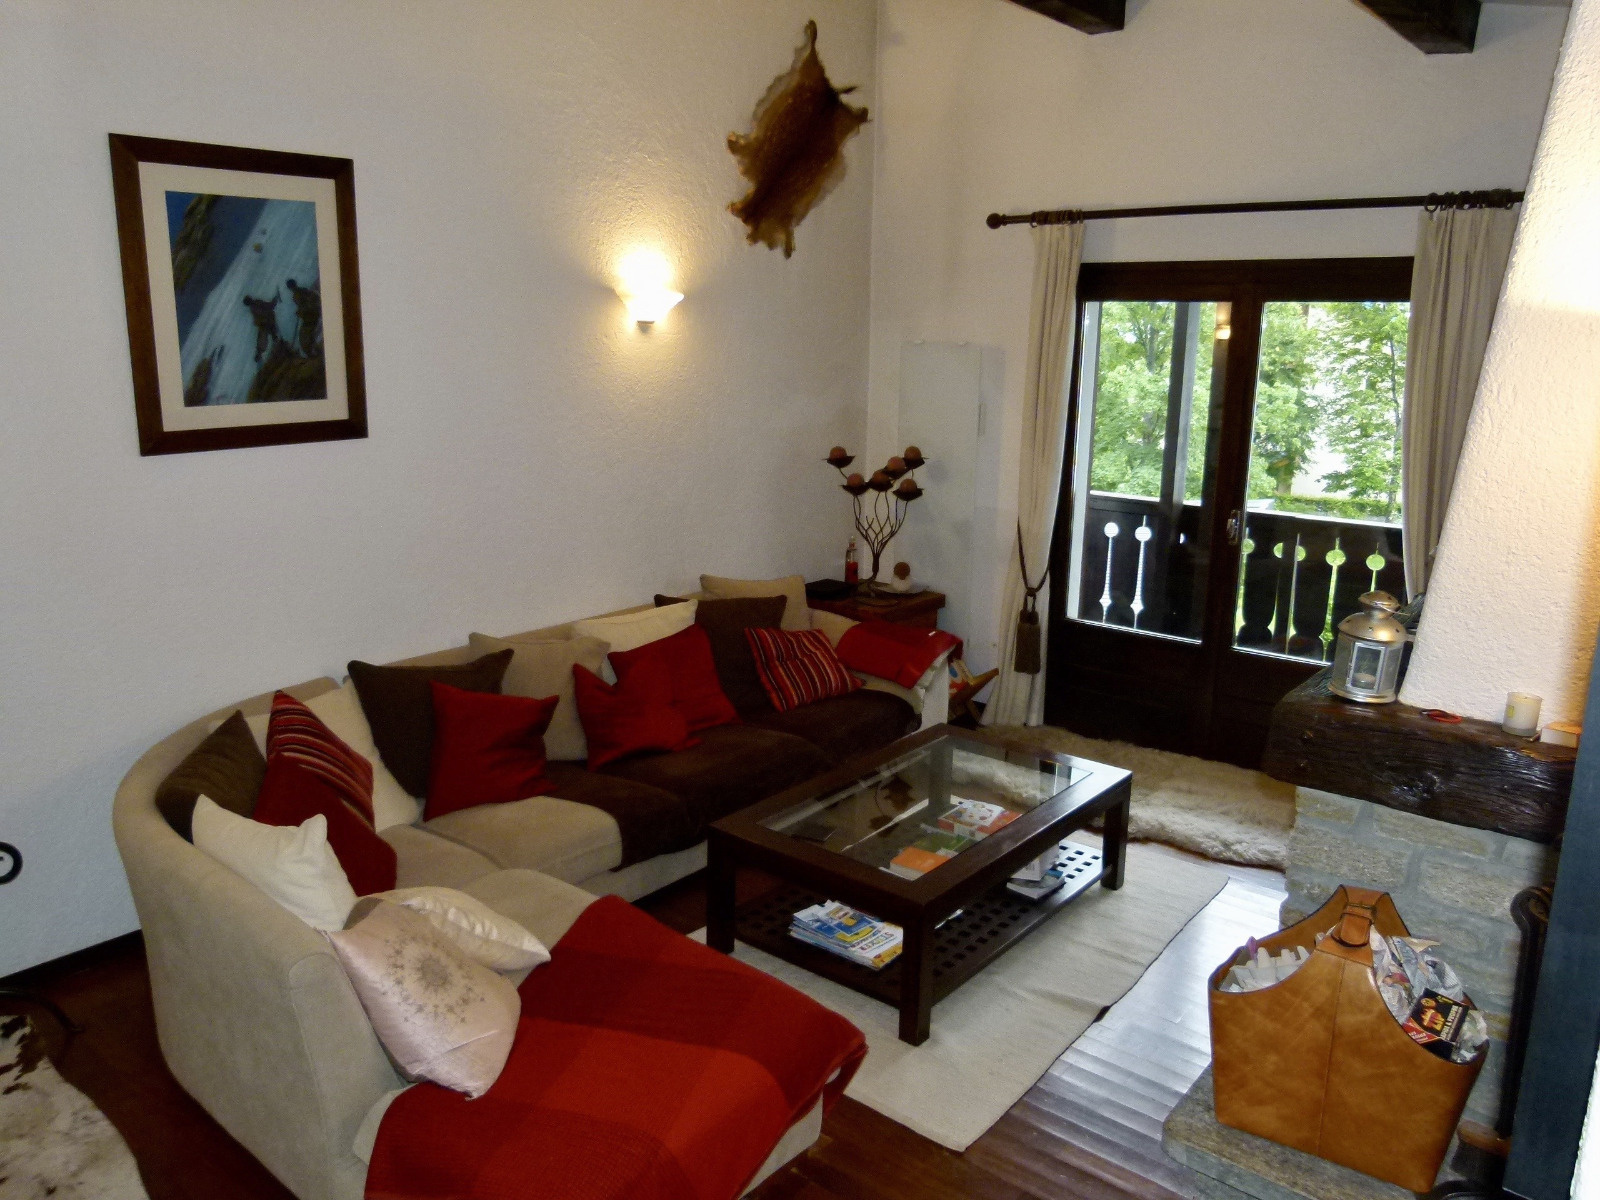 4 BED / 2 BATH  APARTMENT IN PRIME CHAMONIX